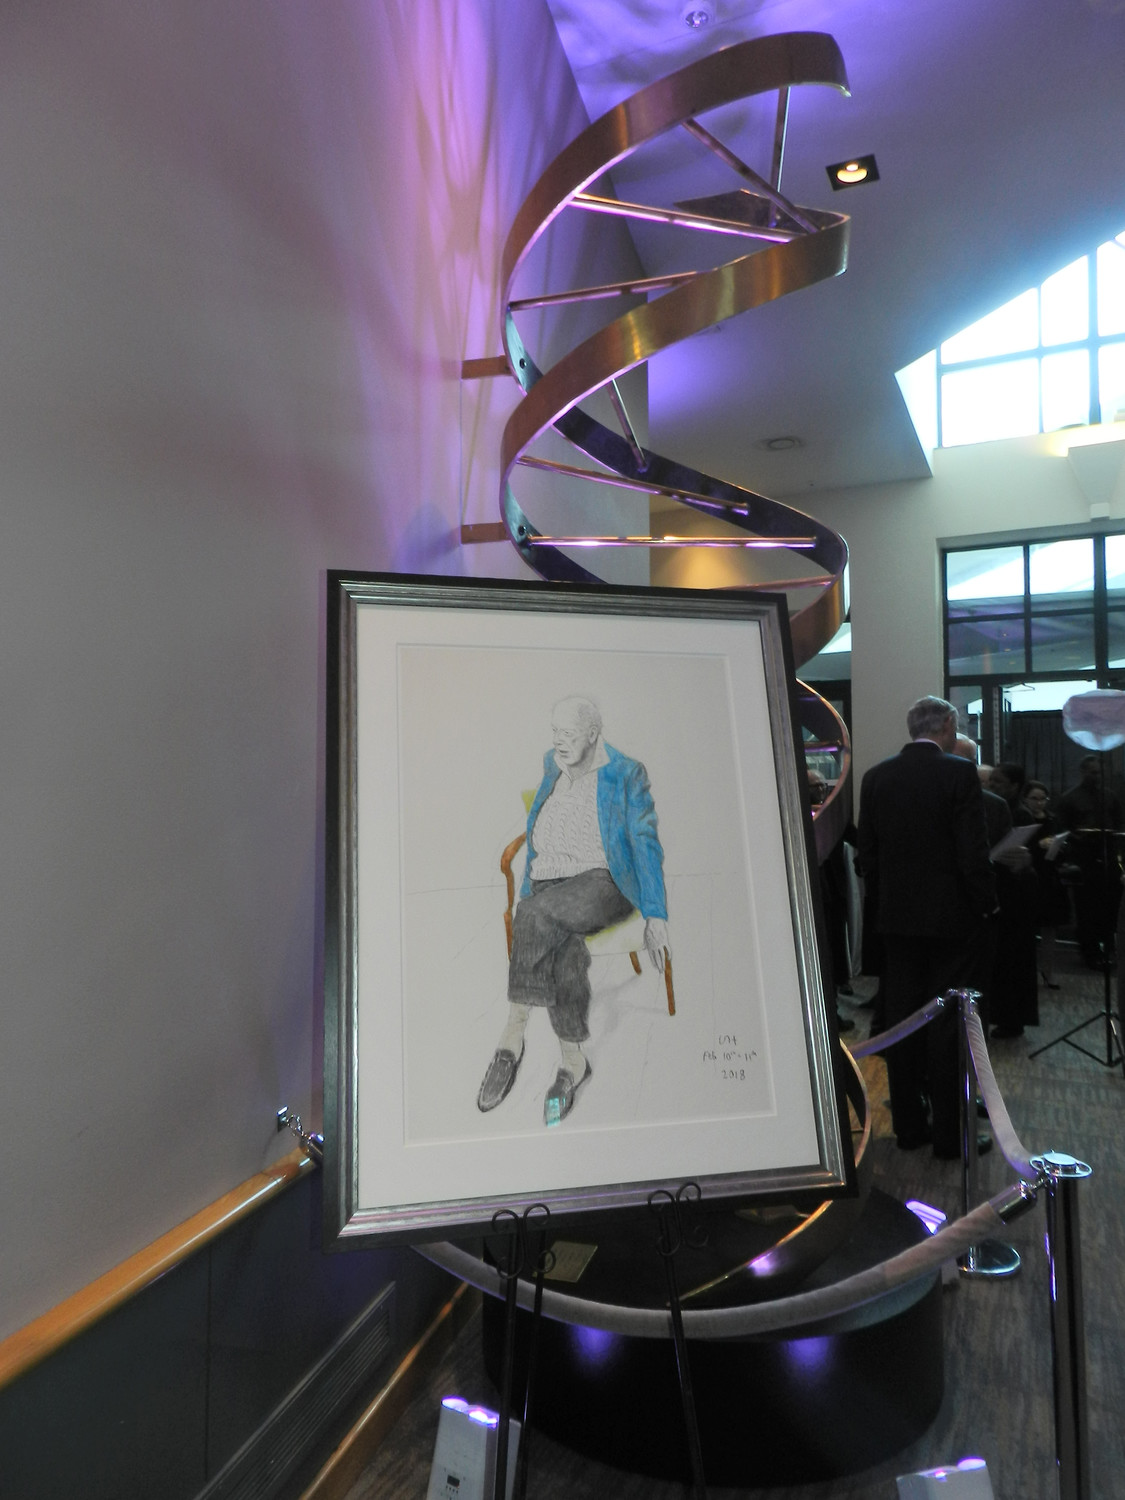 A drawing by David Hockney depicting Dr. Watson, alongside a steel structure of DNA, was displayed in the cocktail area during the party.